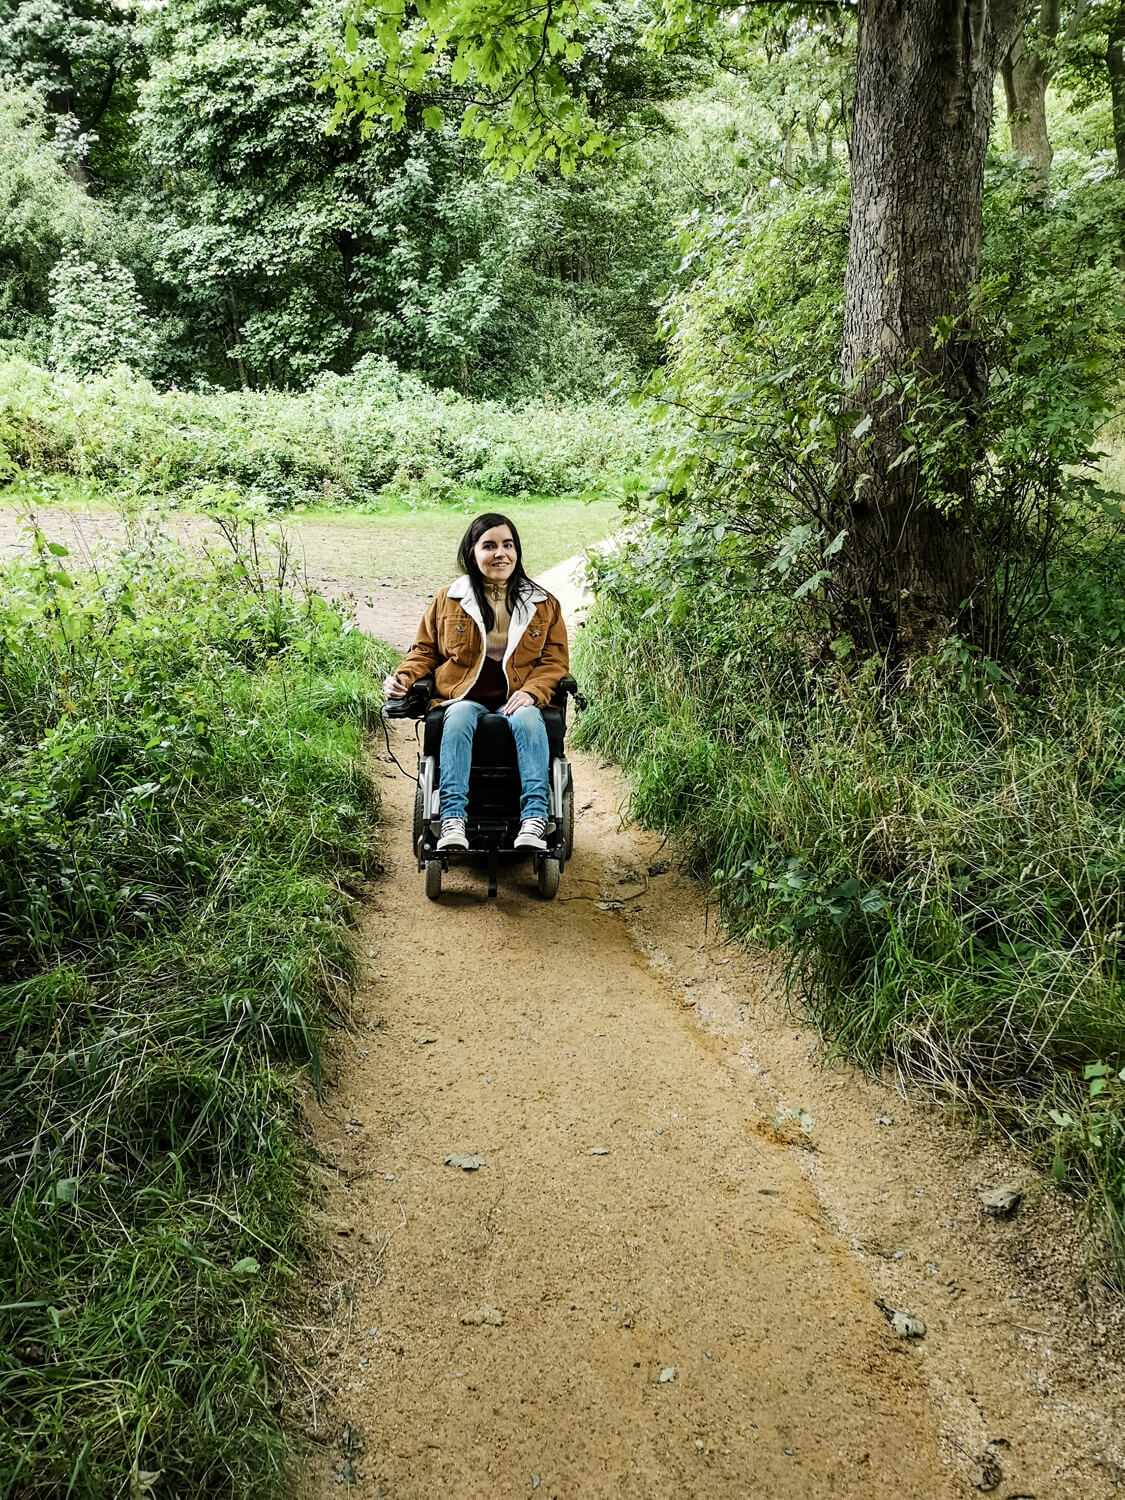 Emma driving her powered wheelchair up a gentle slope path in the woods surrounded by greenery.